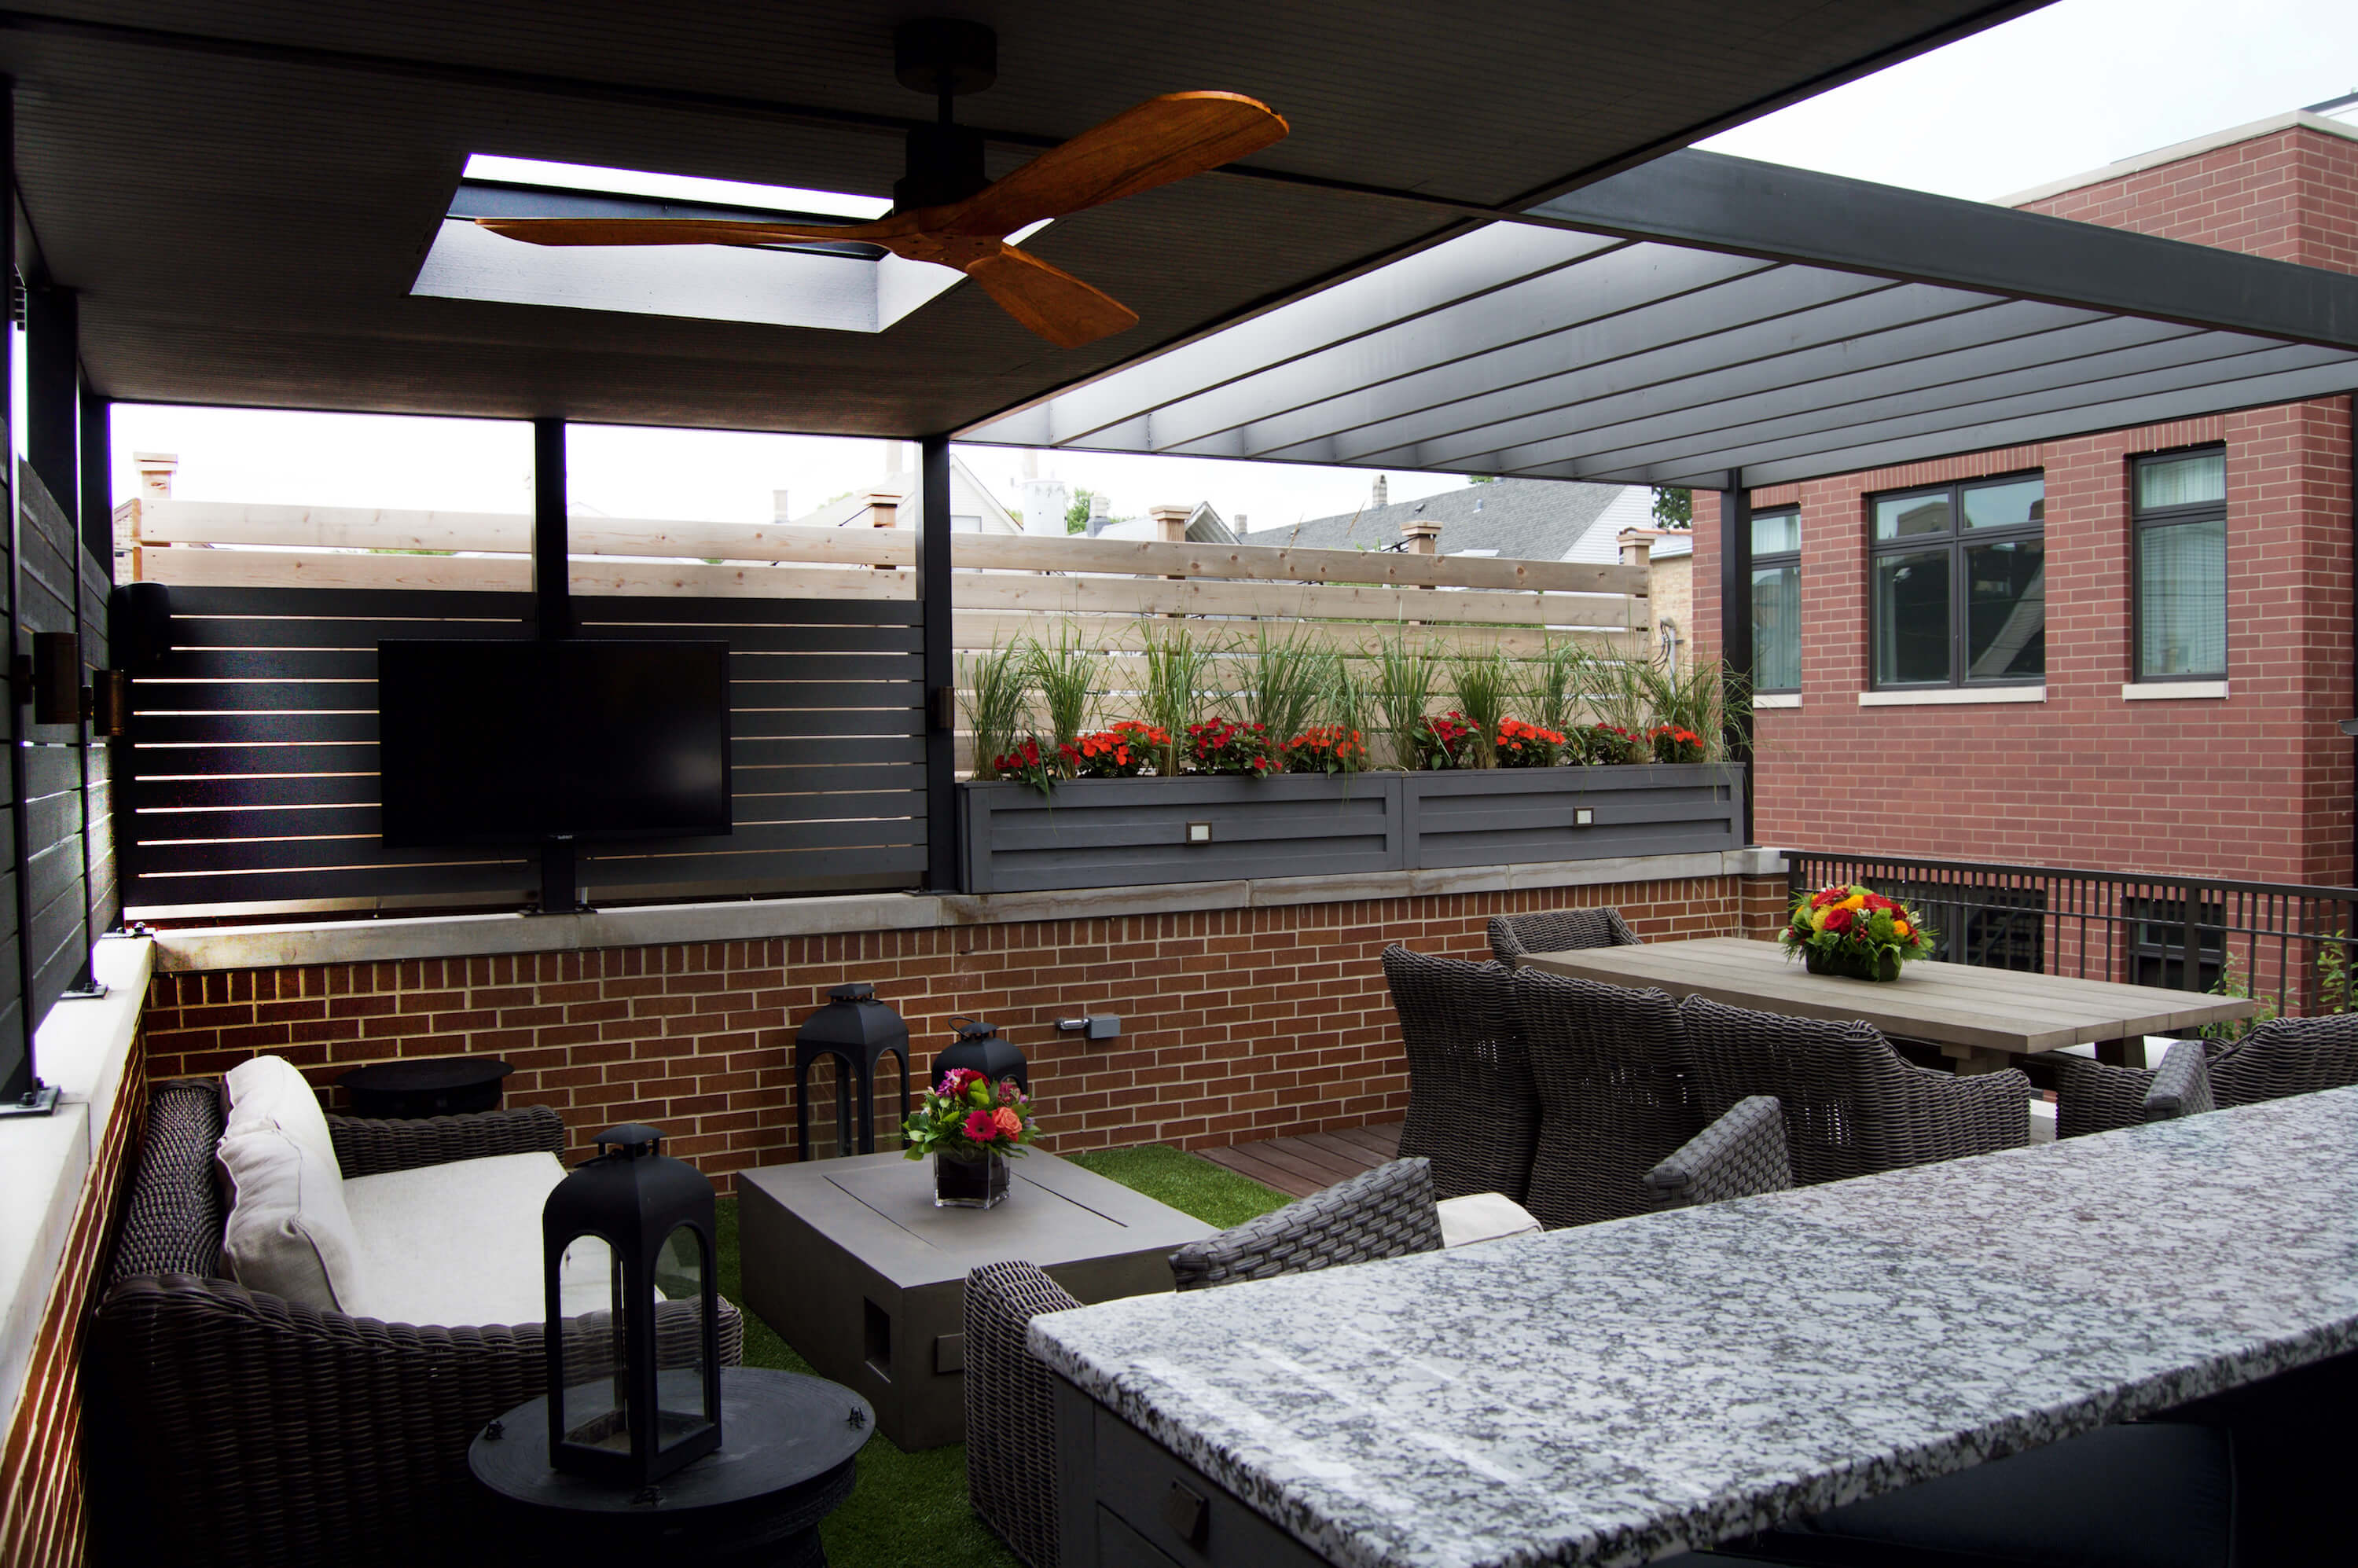 Rooftop deck with pergola and outdoor kitchen